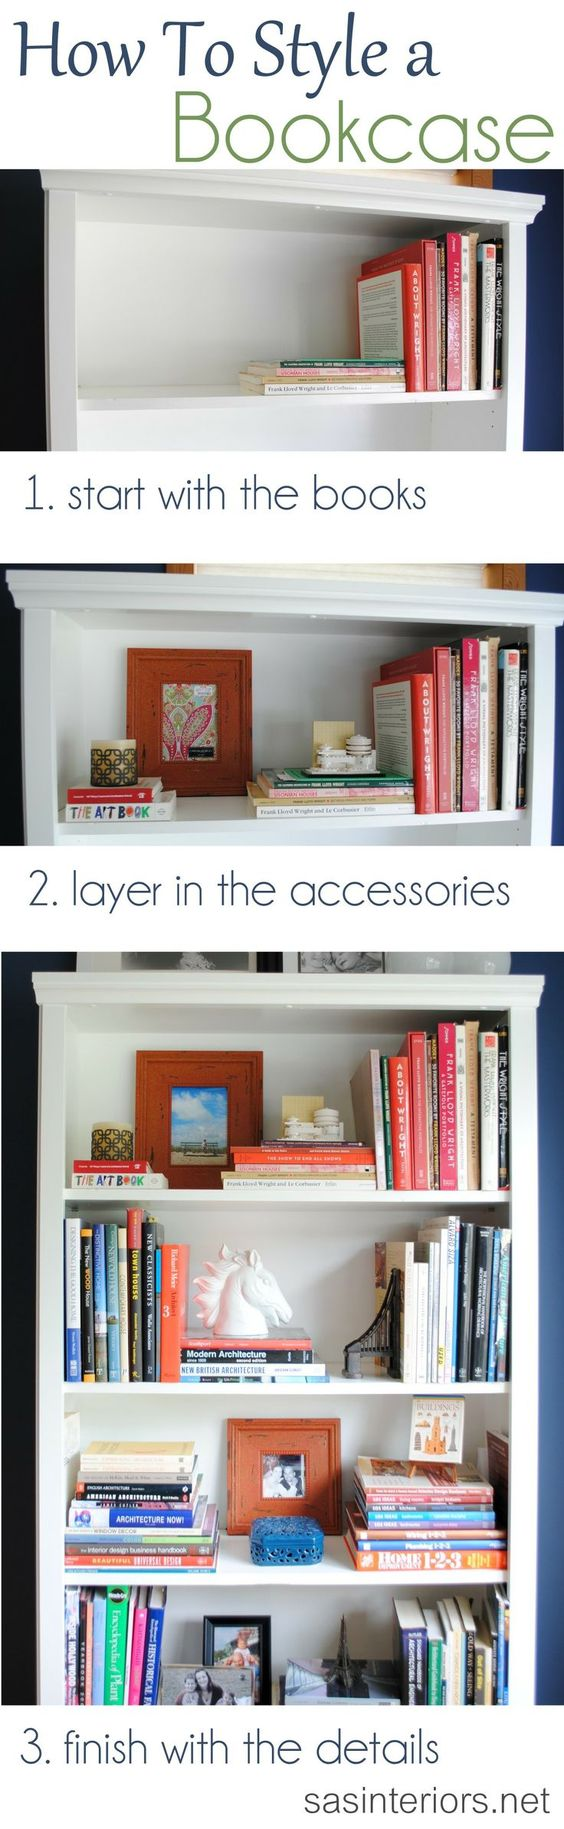 DIY How To Style A Bookcase...Inspiration tips and ideas on how and where to begin accessorizing a bookcase or shelf in your home.